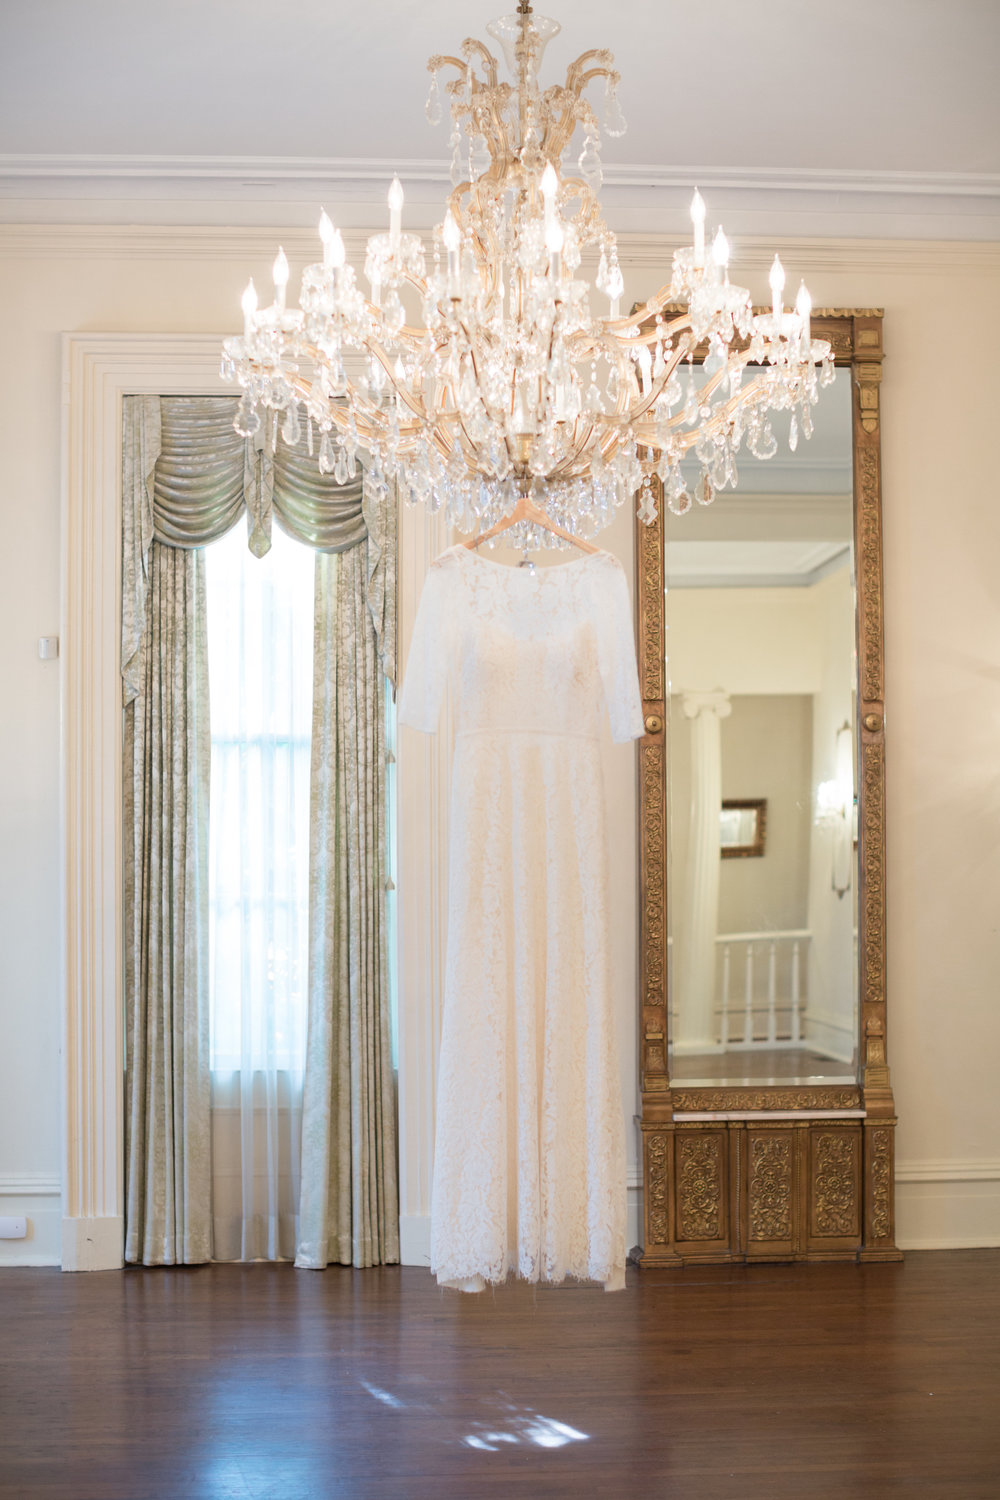 Lyndi-J-Photography-Larger-Than-Life-Events-brockington-hall-ivory-and-beau-bridal-boutique-savannah-wedding-dresses-savannah-bridal-gowns-rebecca-schoneveld-elsa-savannah-weddings-georgia-bridal-boutique-jacksonville-bridal-charleston-bridal-2.jpg